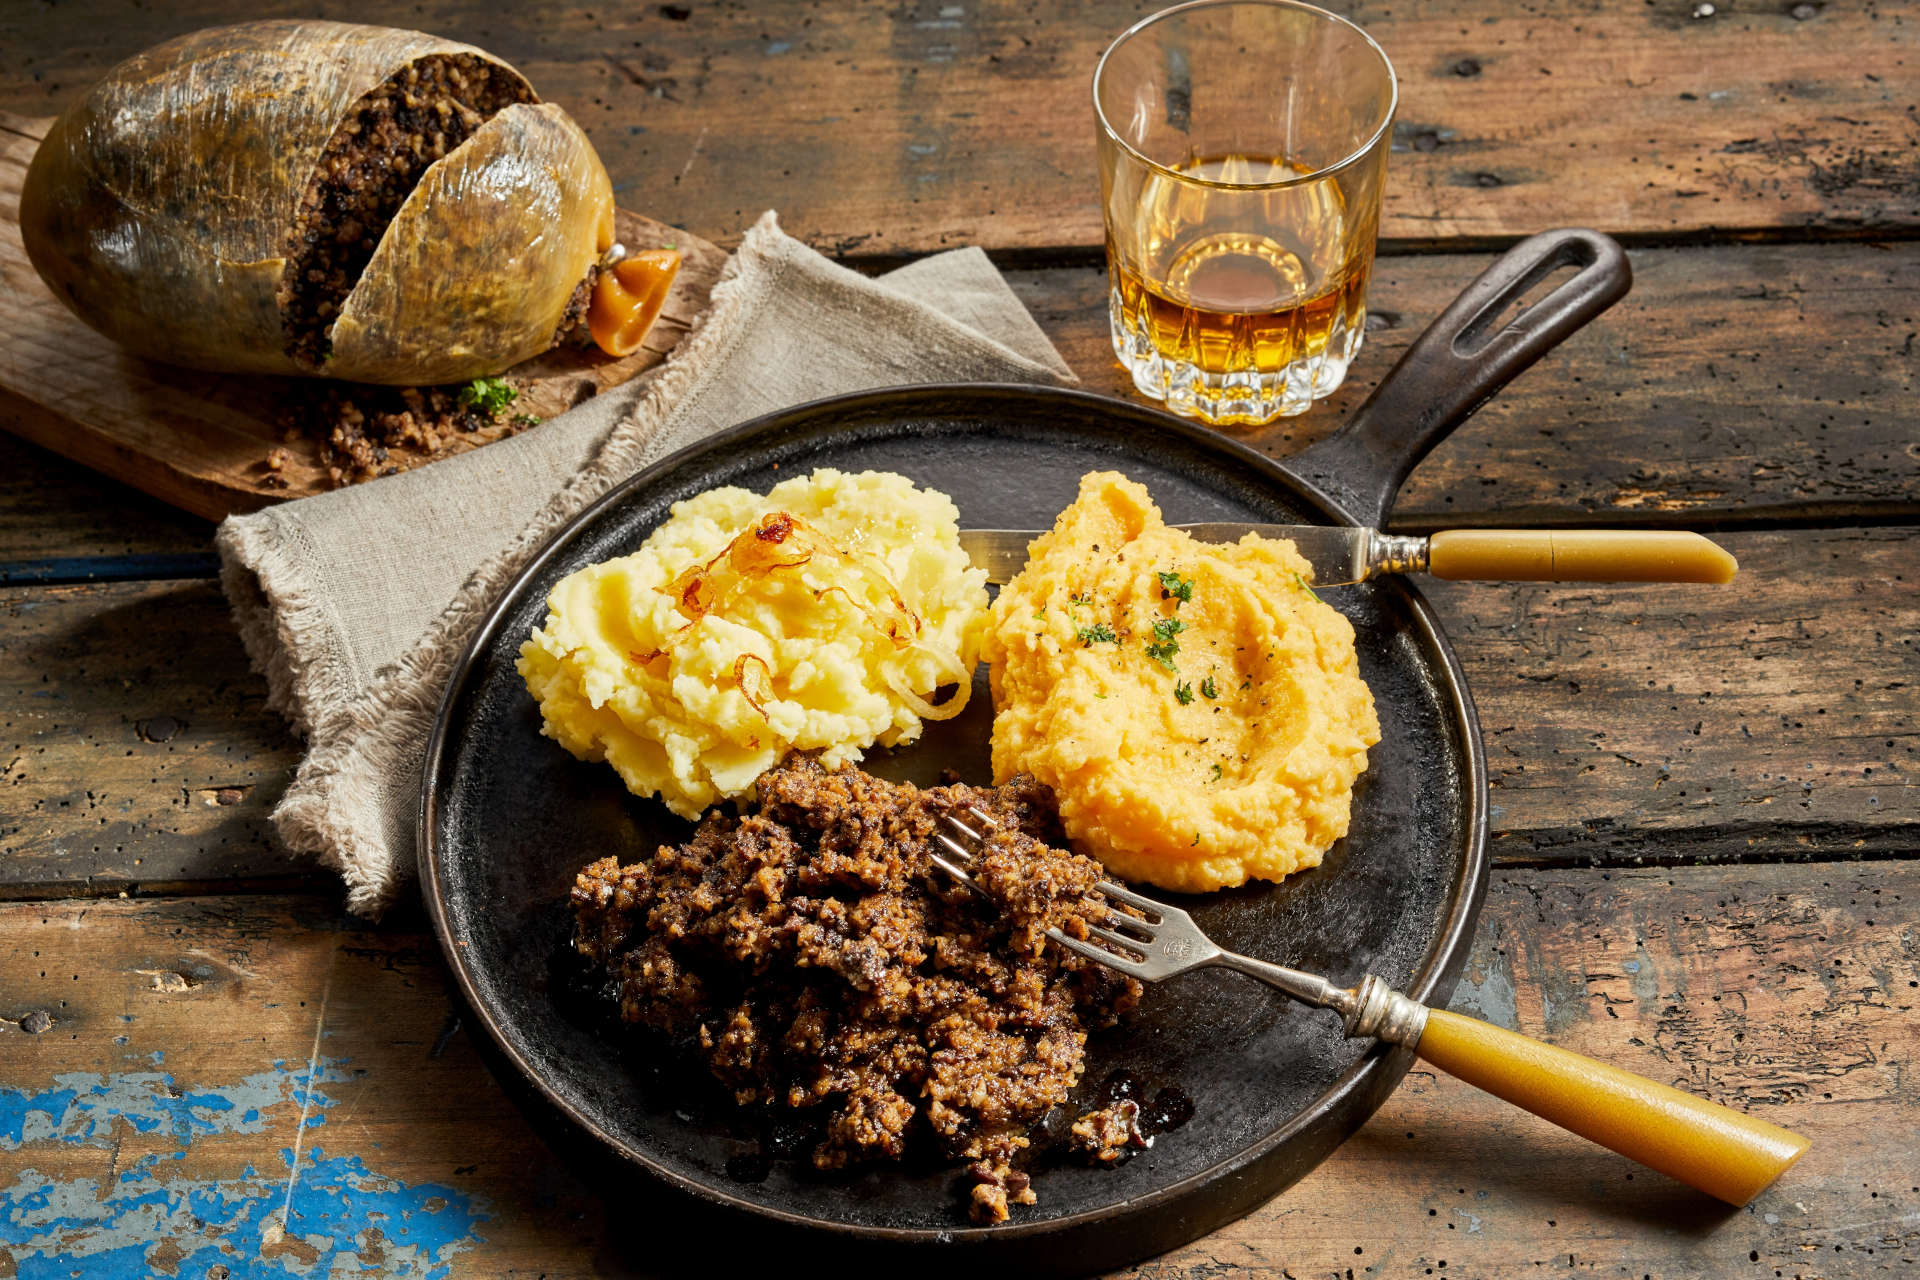 Traditional Meal of Haggis, Neeps and Tatties